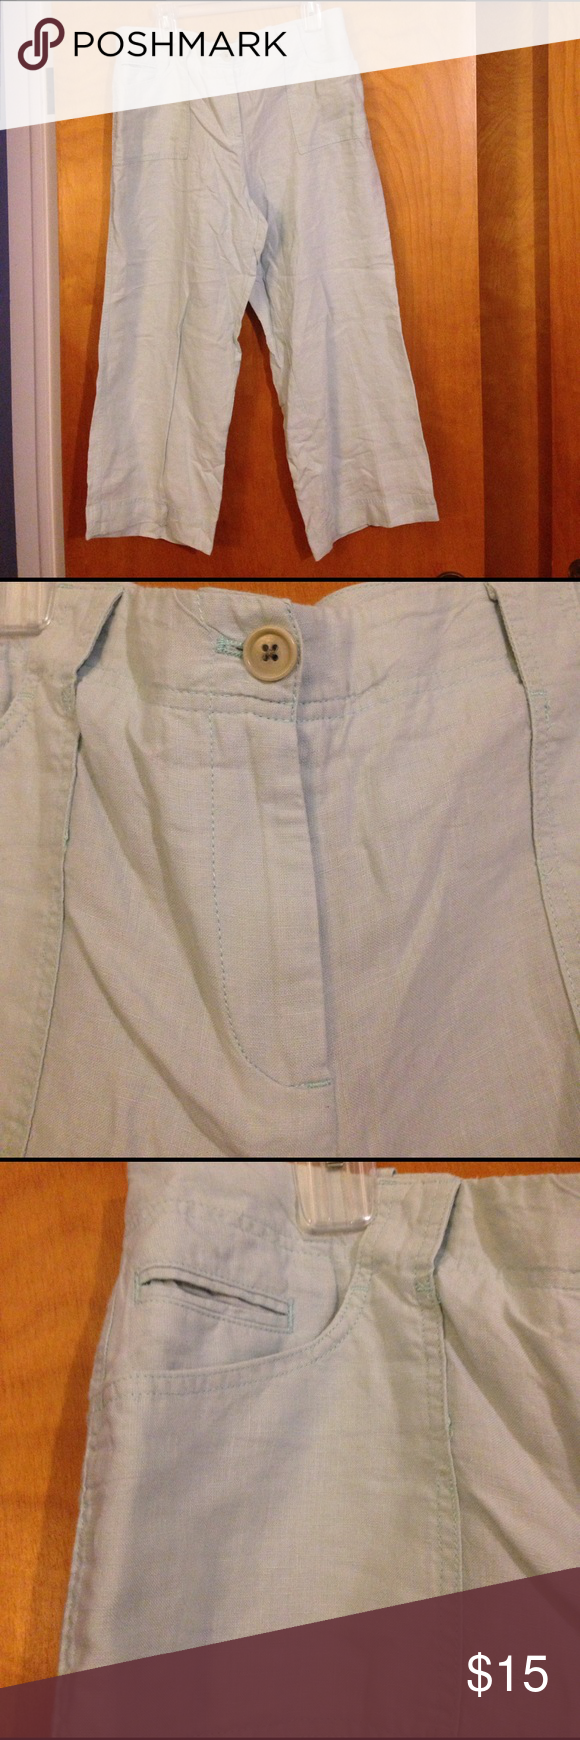 Size 14 Talbots Signature Linen Bottoms! DESCRIPTION 100% linen Talbots bottoms. Great for the summer. Machine wash, tumble dry. Tag states signature, size 14. Two buttons and a zipper for closure. Zipper works properly. Three front pockets and two back pockets. Inseam is approx 24 inches. Outseam is approx 35 inches. I'm not sure how to describe the style, they may be considered Capri/cropped wide leg. Tag only states signature for the style. This tag is half on- needs a stitch, remove it…